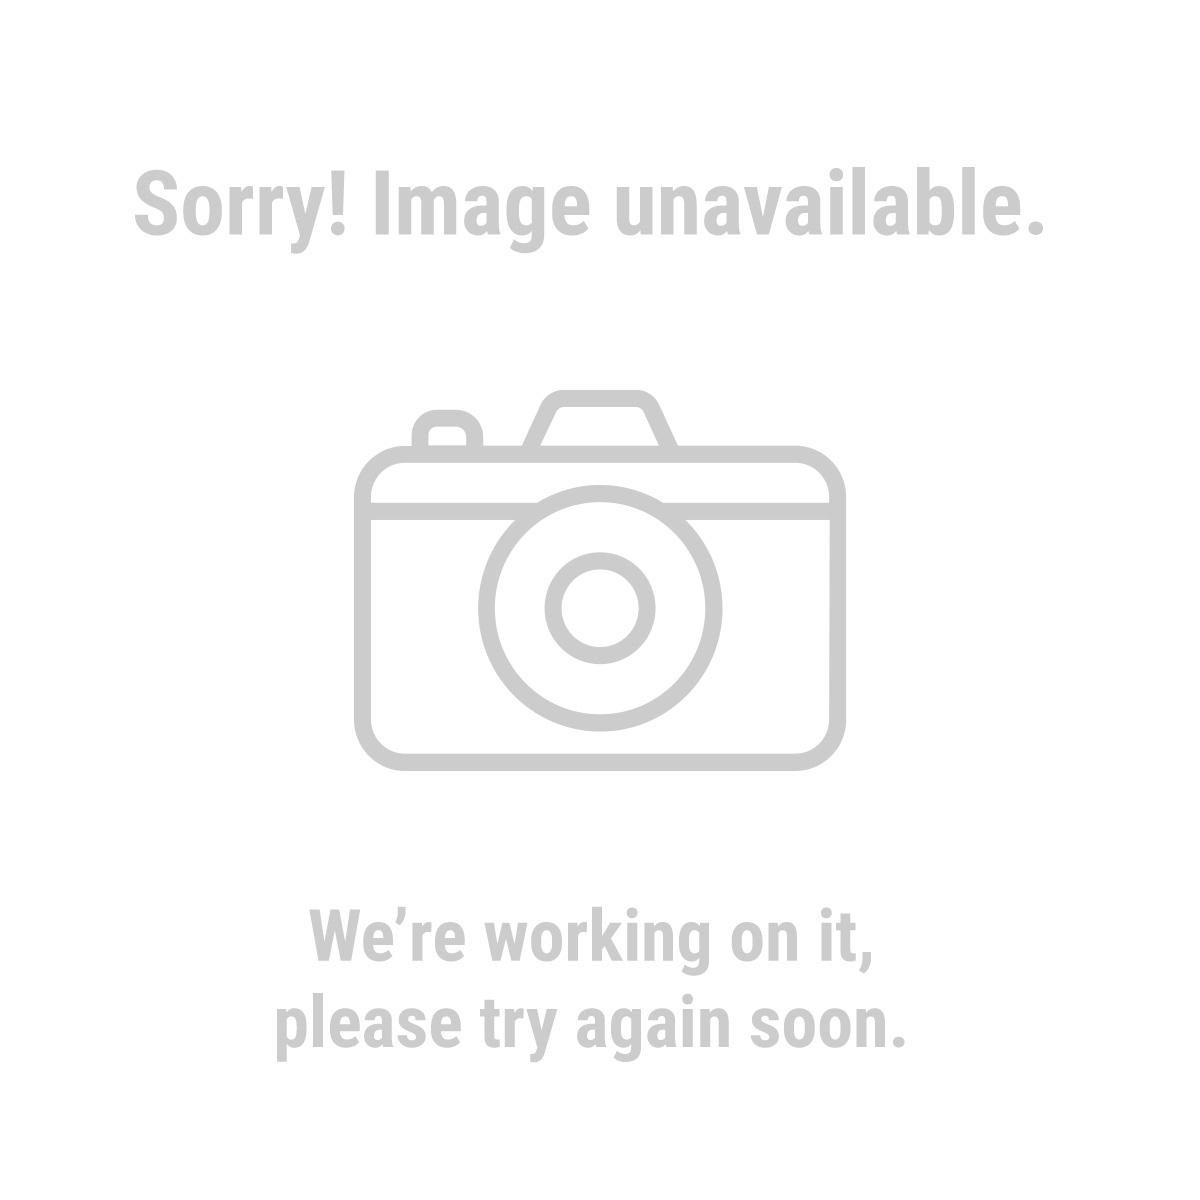 Pittsburgh® 61249 3 Piece Curved Jaw Locking Pliers Set